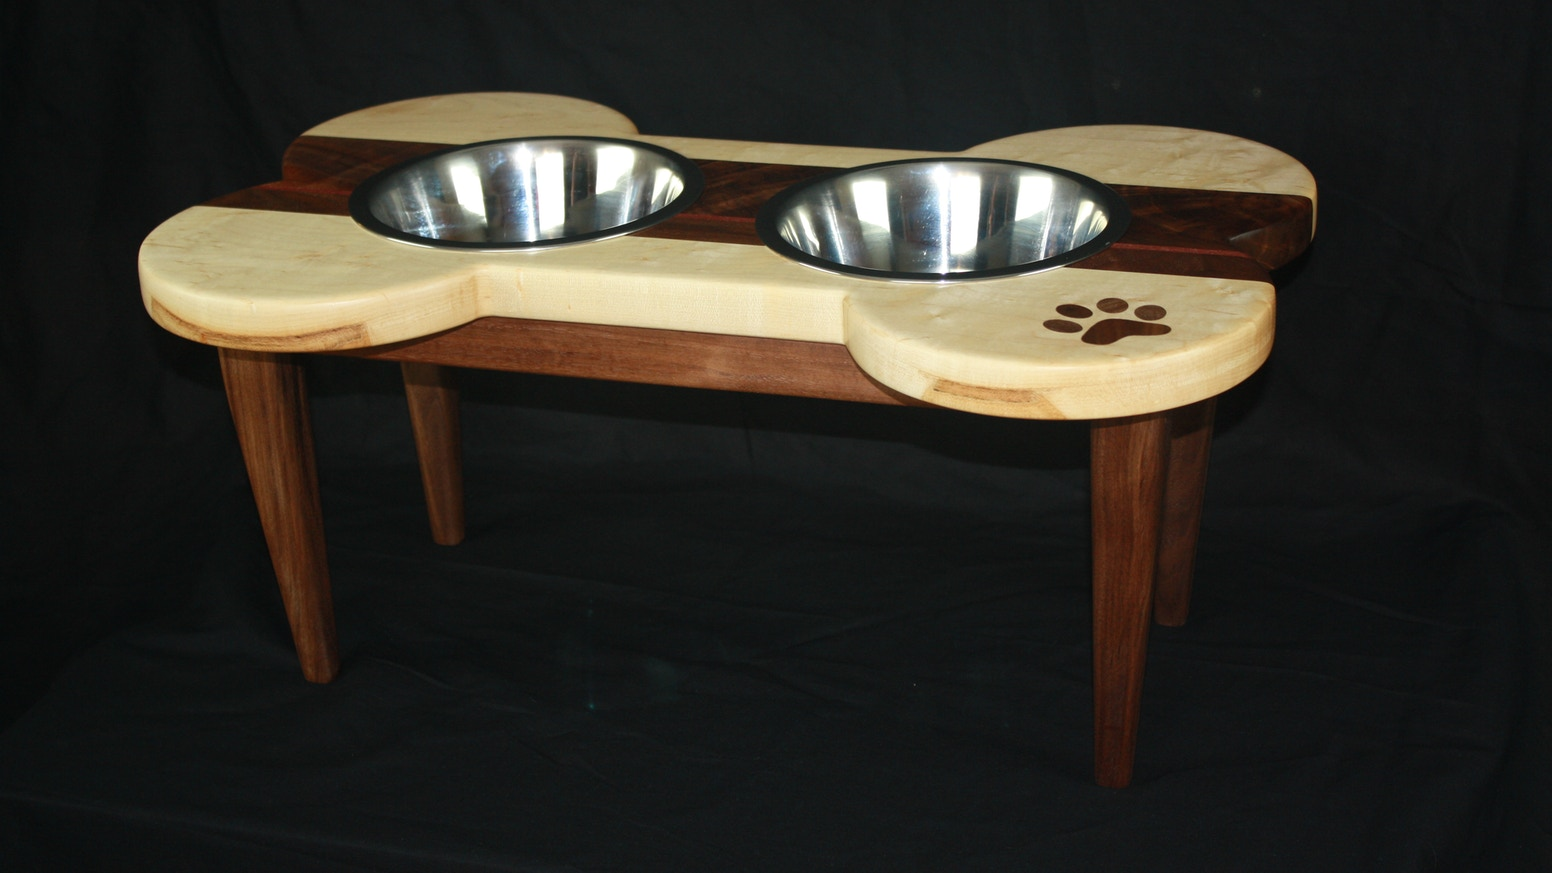 The Paw Bar Fine Handmade Wood Cat Dog Dining Tables By Curt